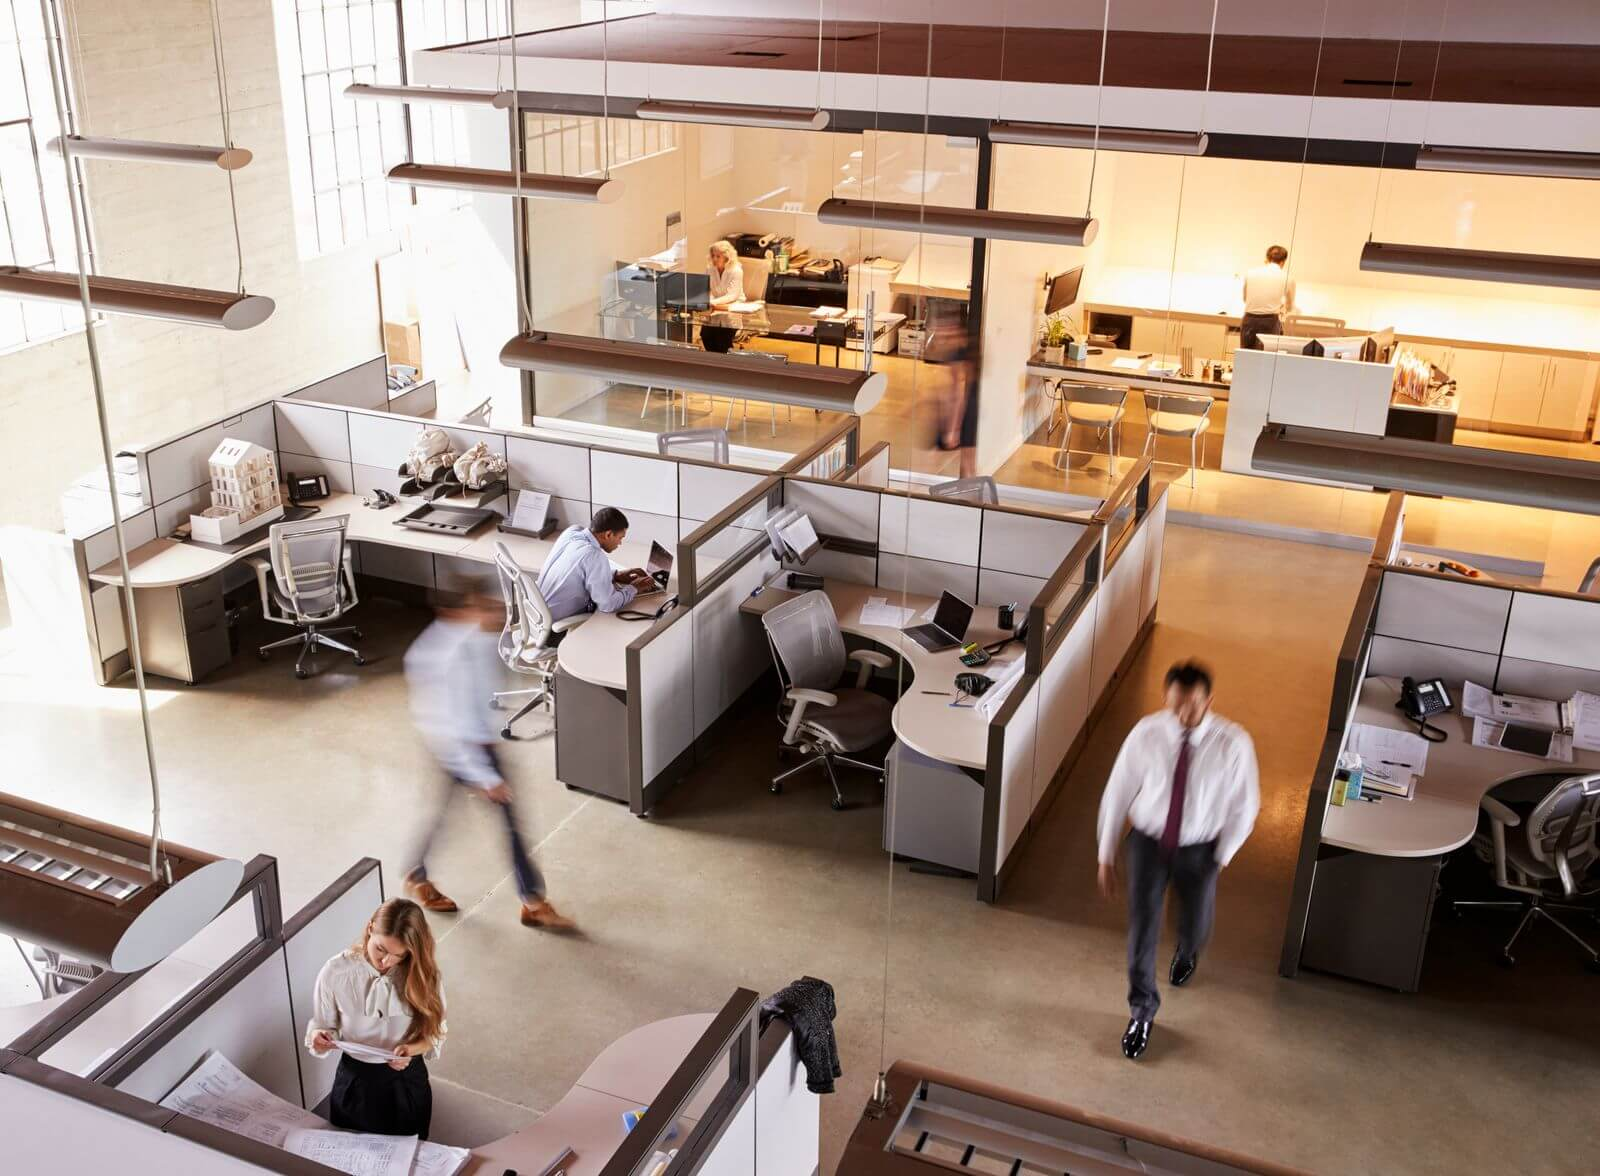 Office cubicles with workers